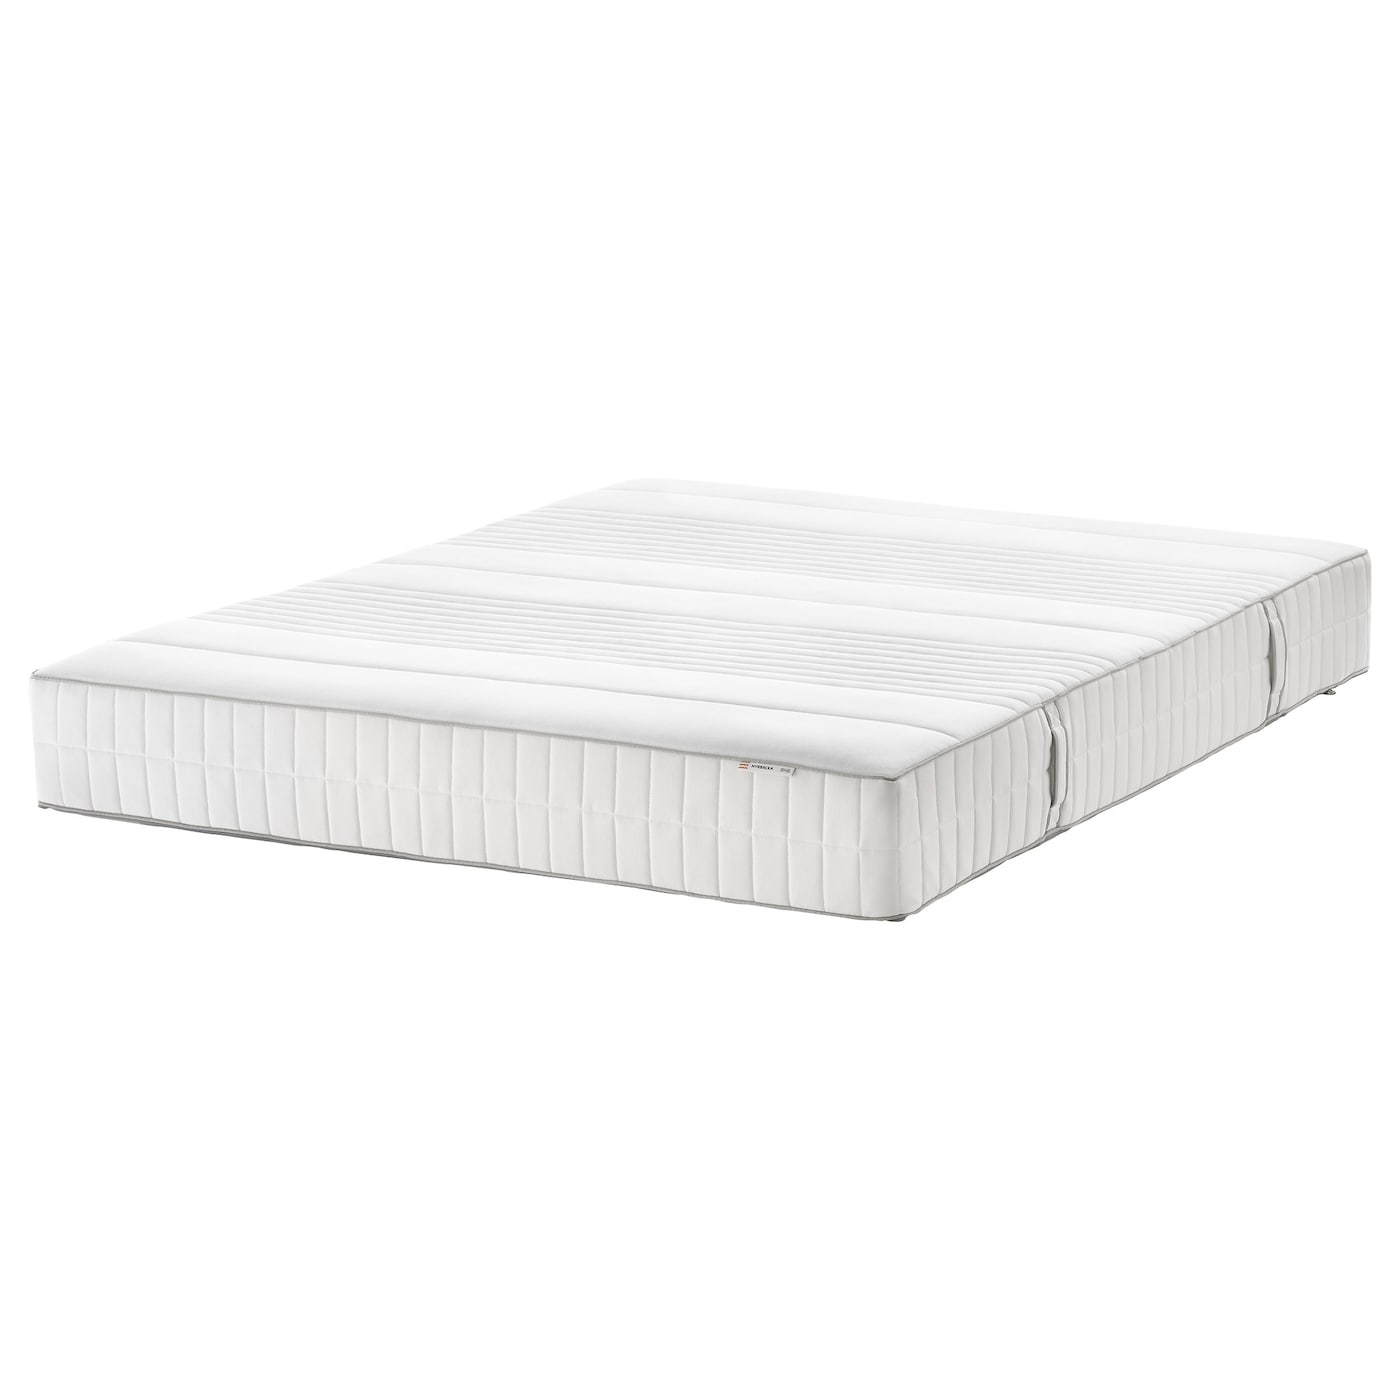 myrbacka matelas latex mi ferme blanc 140x200 cm ikea. Black Bedroom Furniture Sets. Home Design Ideas